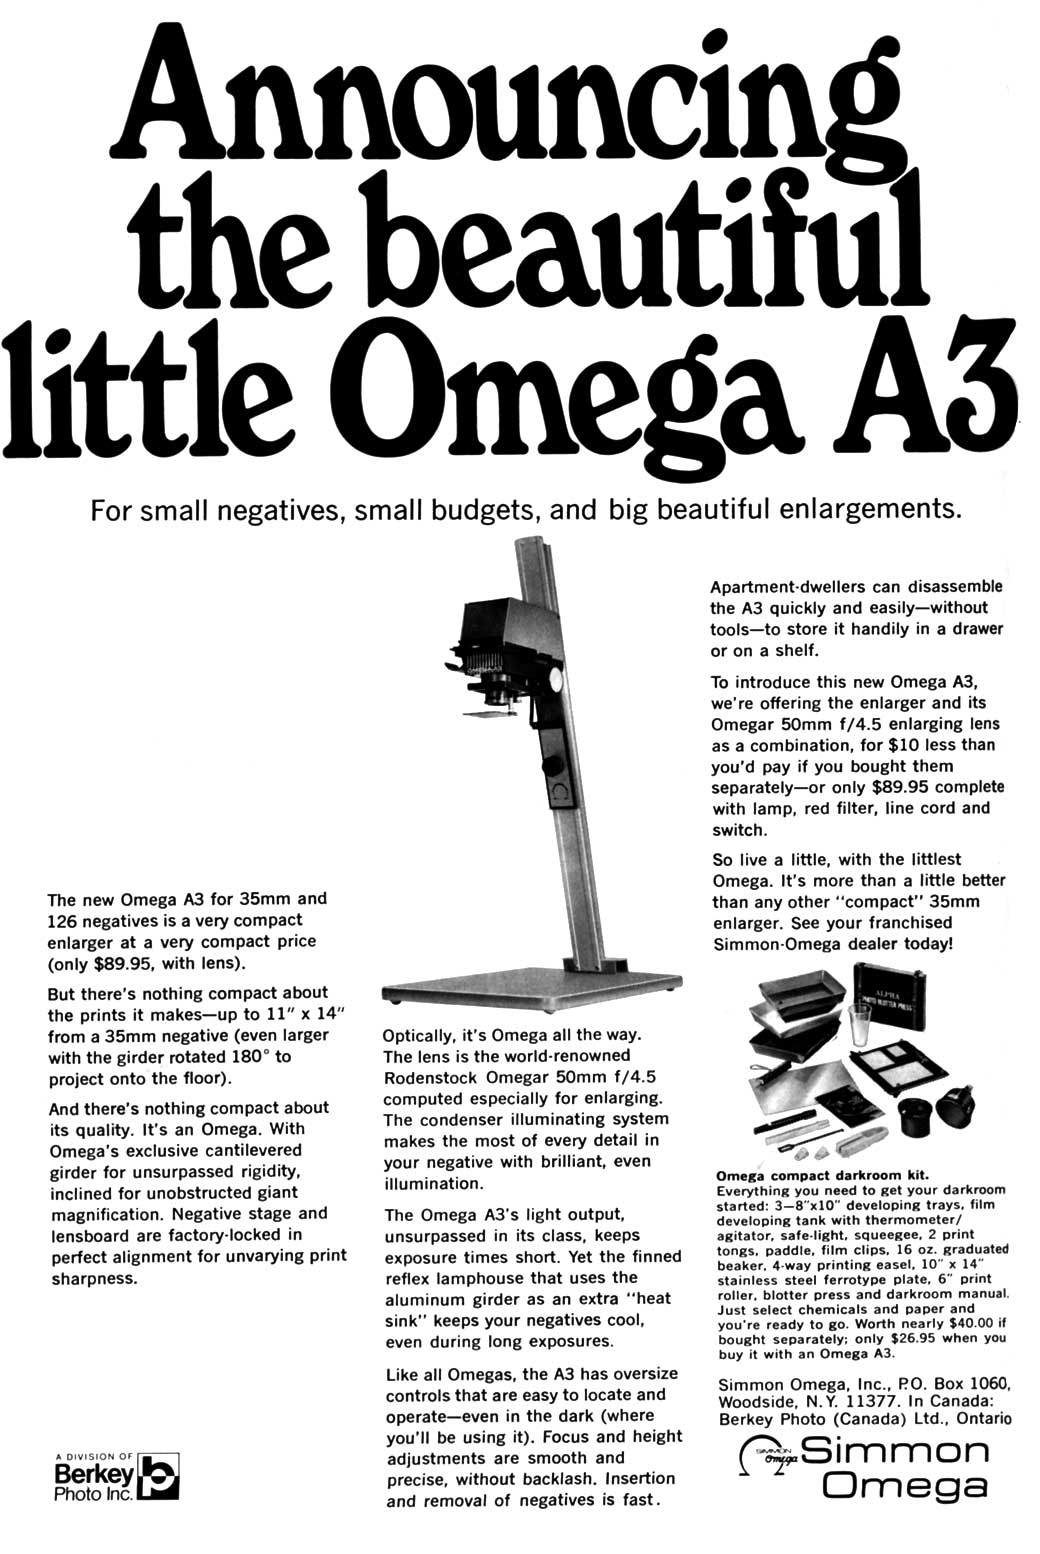 Ollinger's Guide to Photographic Enlargers: Simmon Omega A